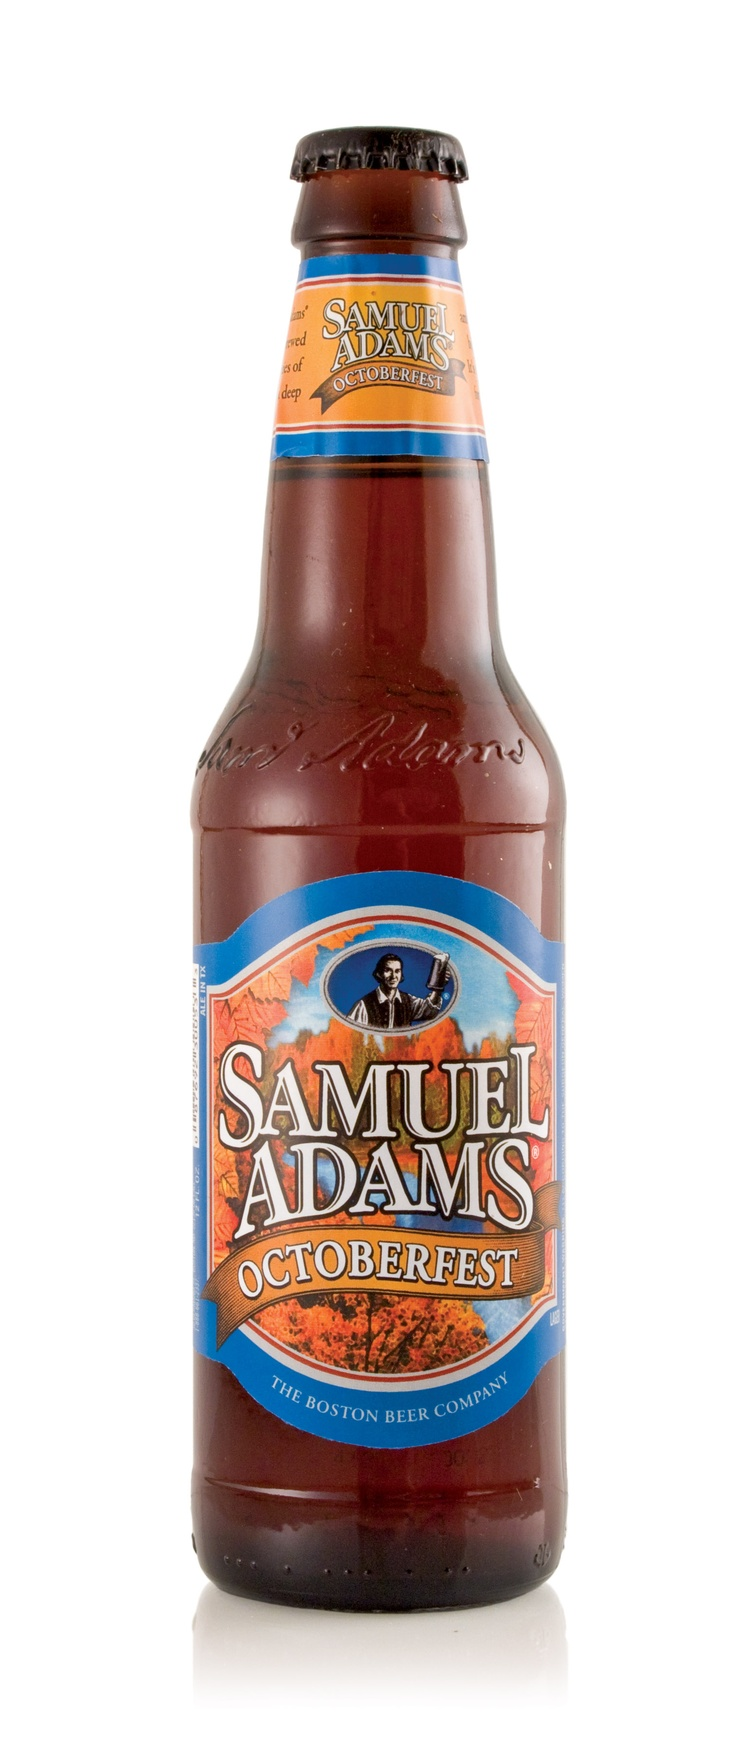 Happy October! Who thinks a #SamAdams #Octoberfest sounds good right now?